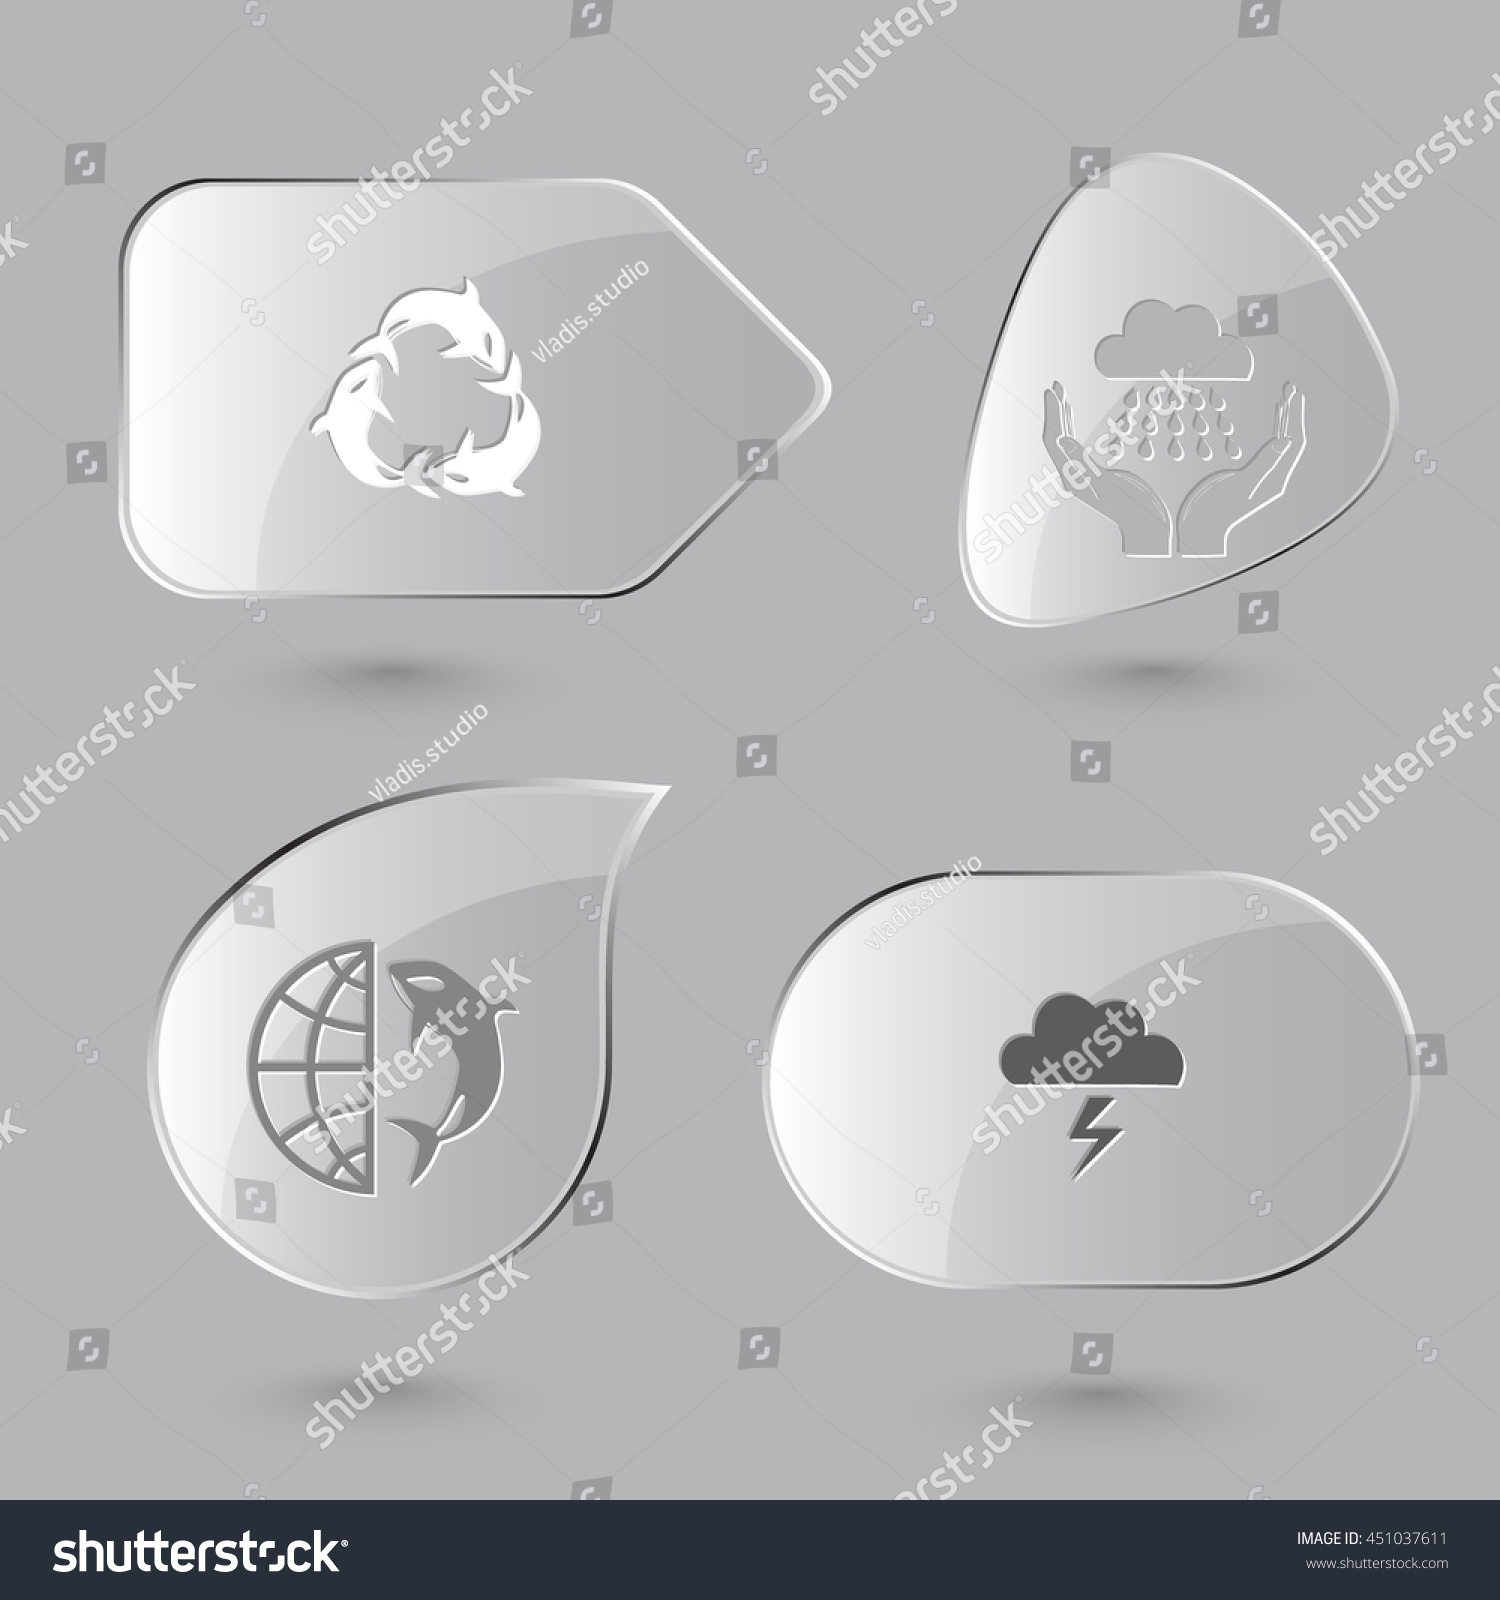 4 images killer whale recycling symbol stock vector 451037611 4 images killer whale as recycling symbol weather in hands globe and shamoo biocorpaavc Choice Image